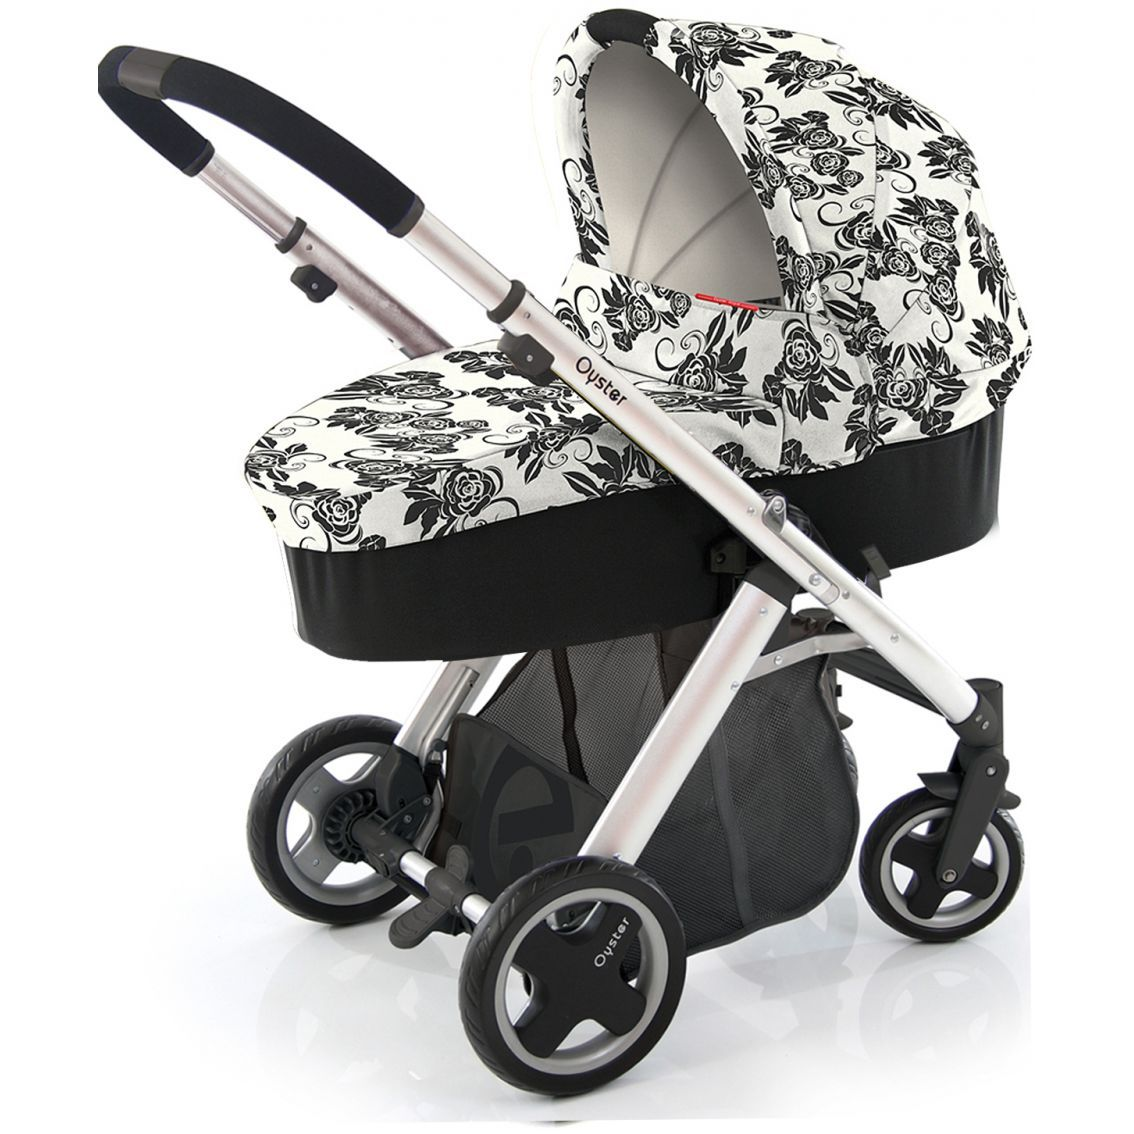 Ickle Bubba Stroller, Baby Travel System Bundle incl